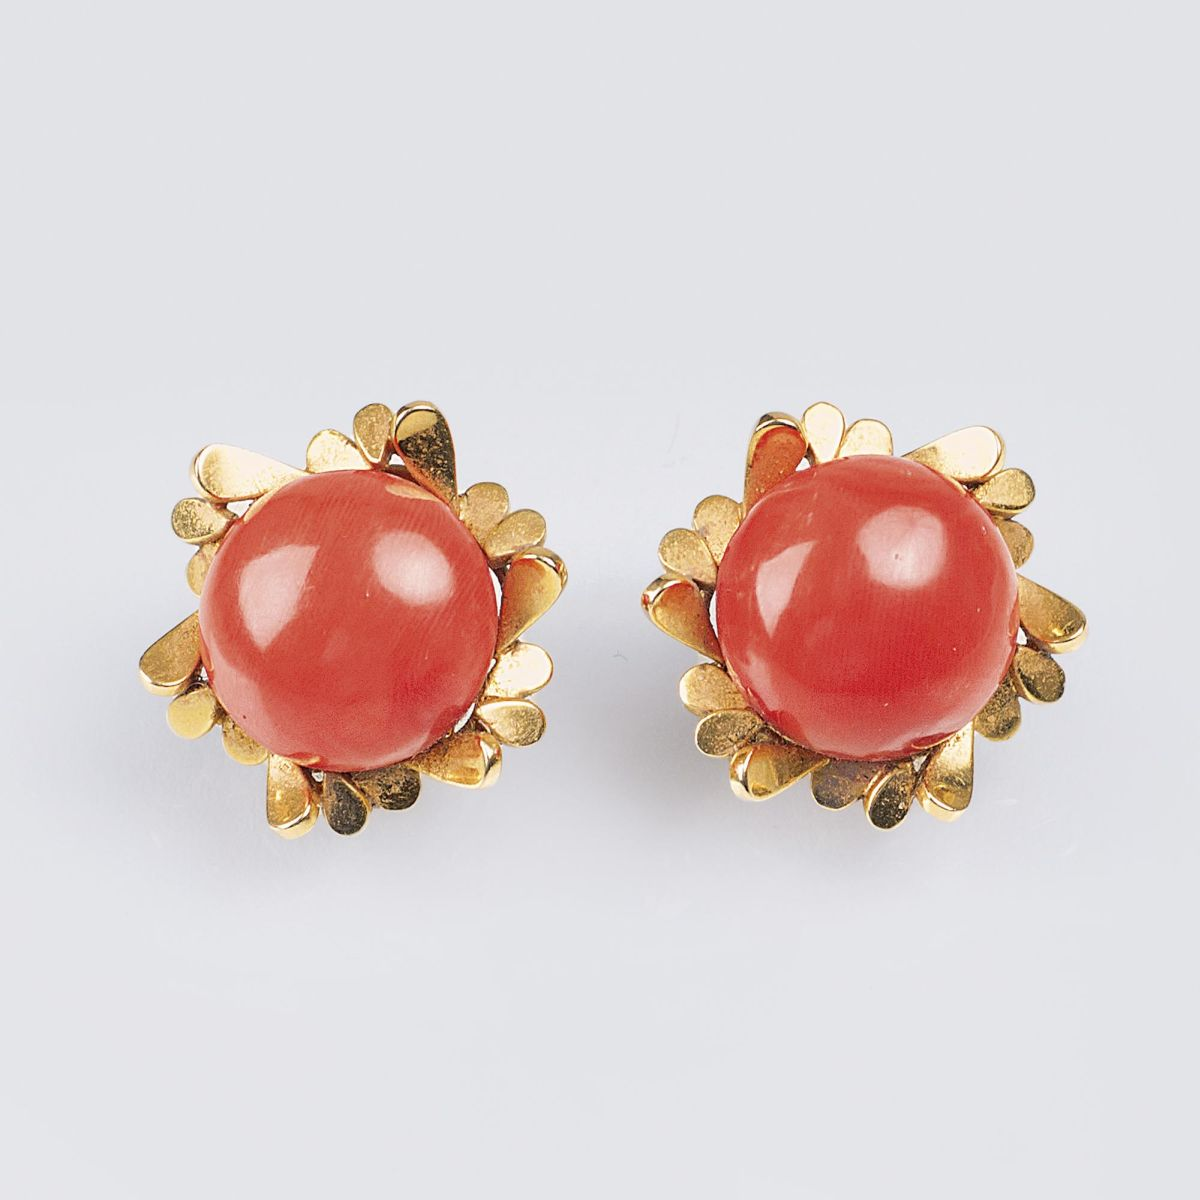 A Pair of Vintage Gold Earclips with Coral Setting